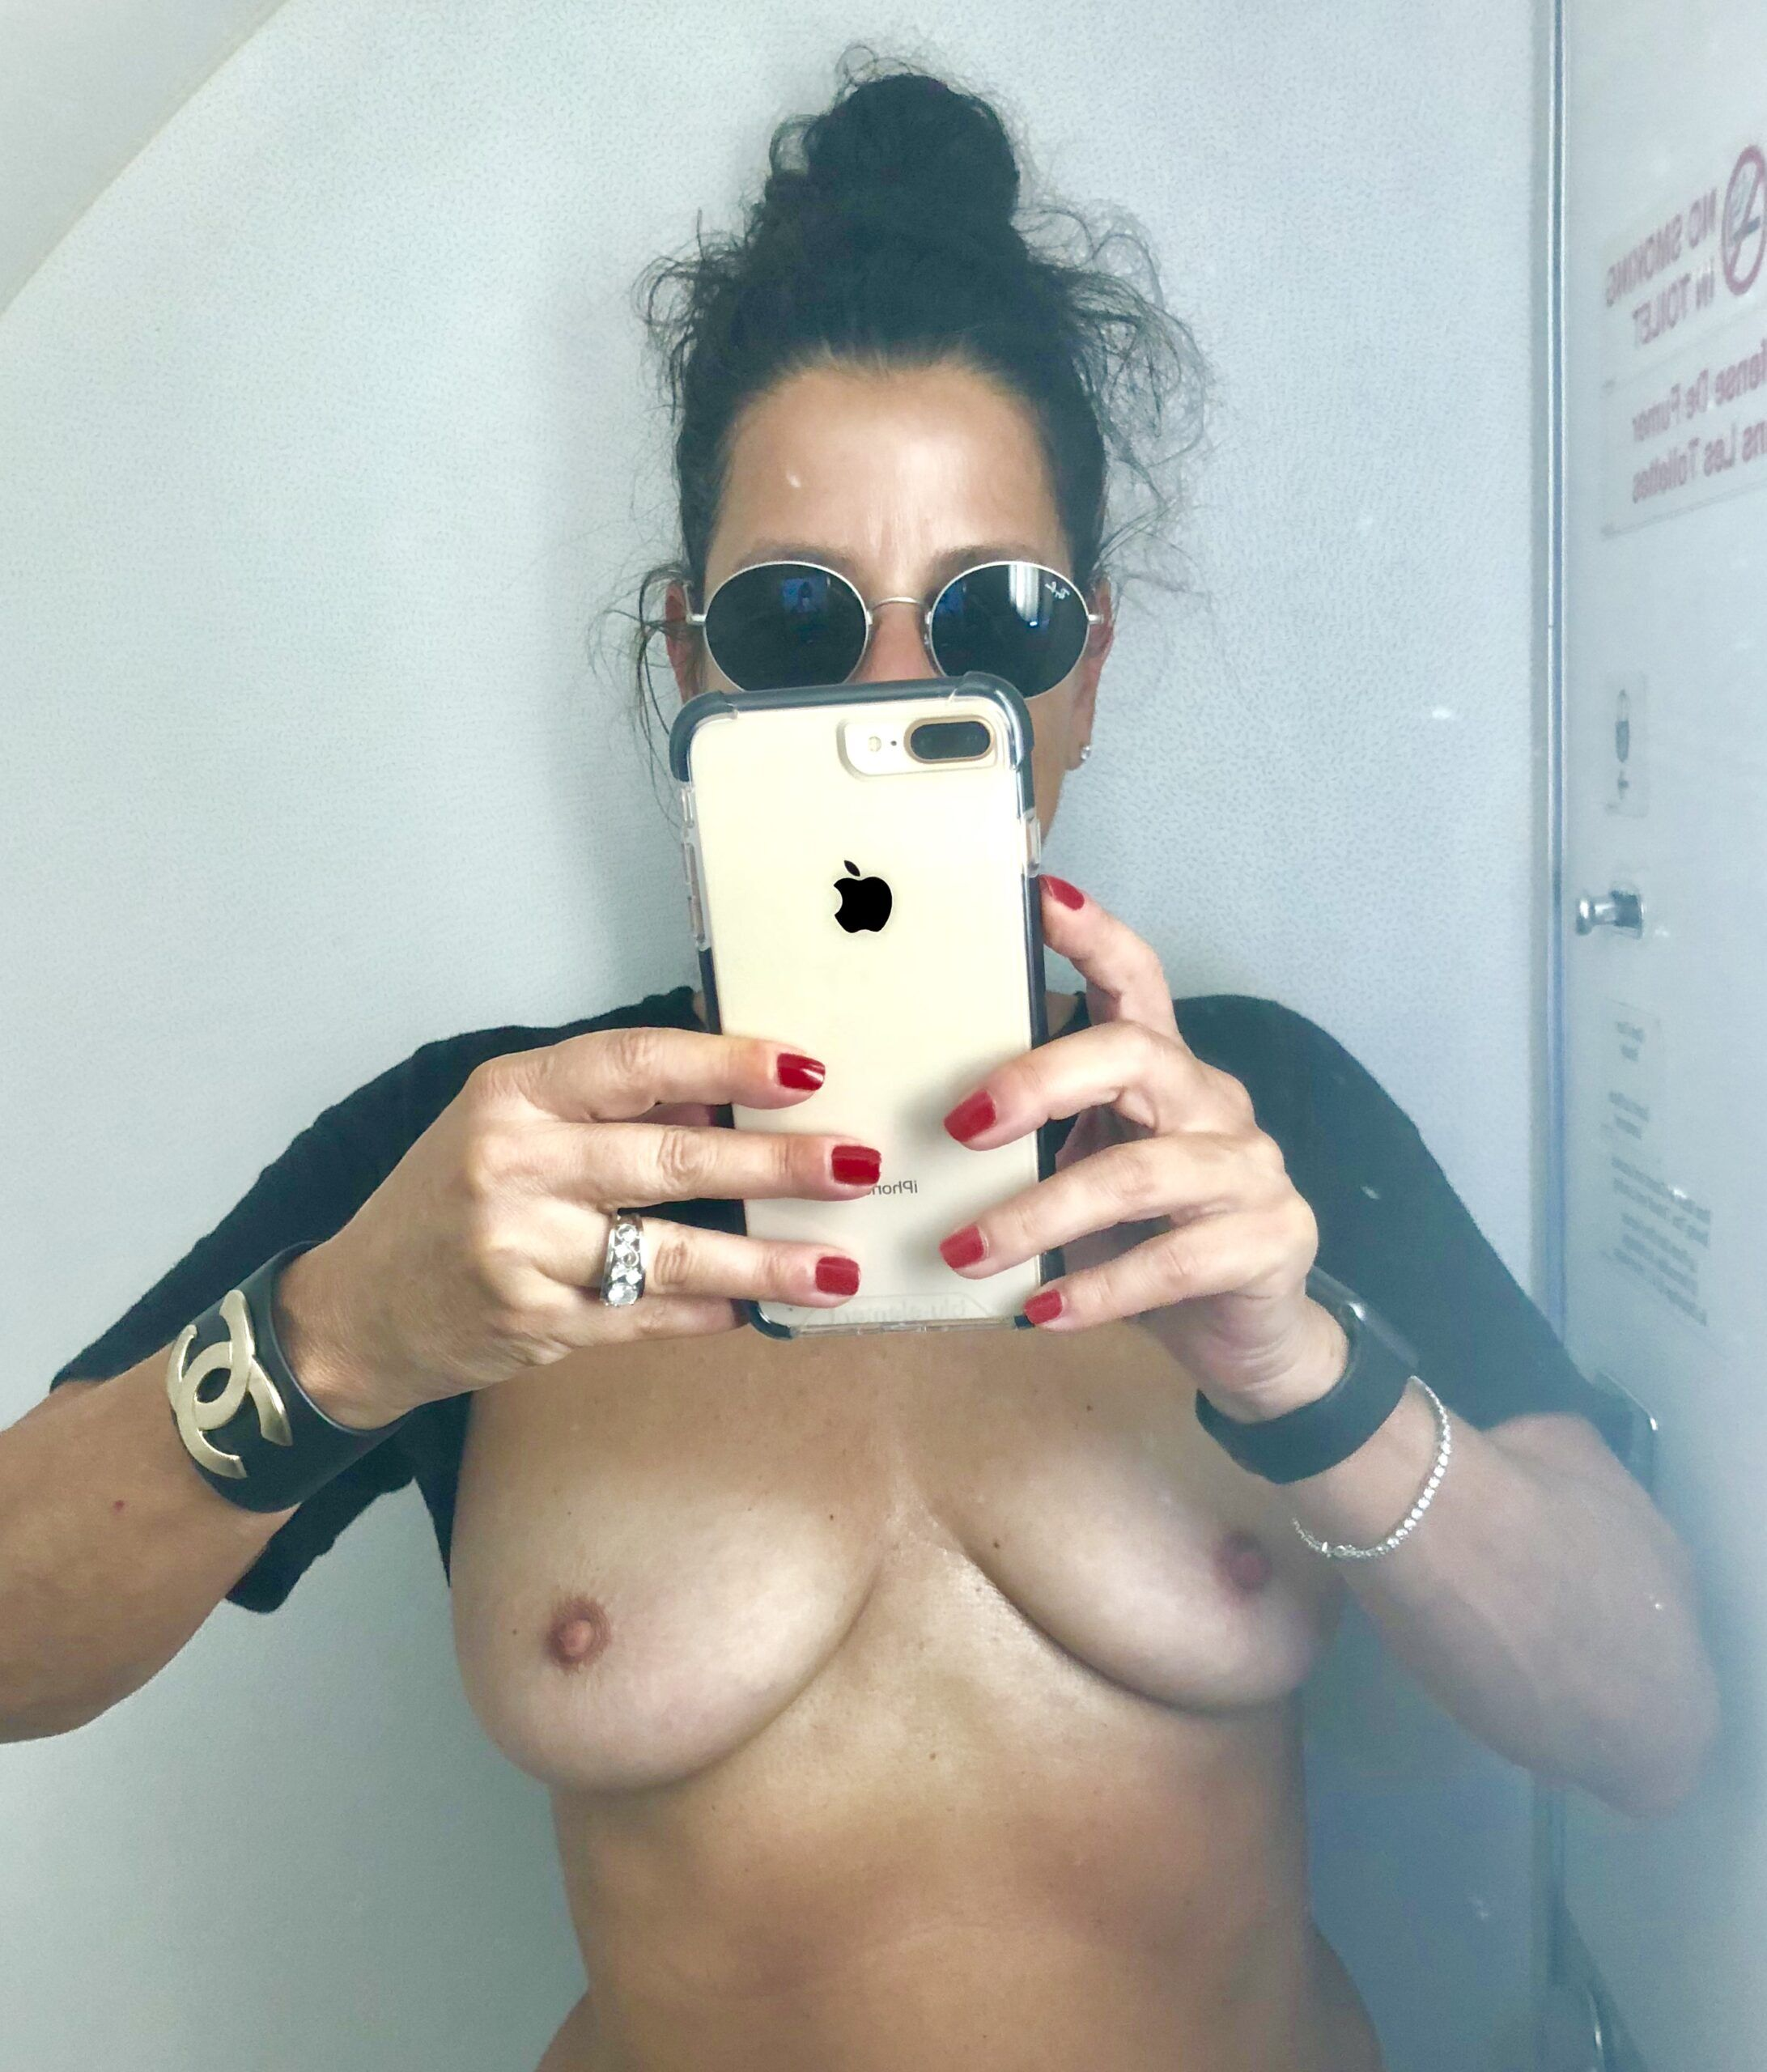 Real Amateurs MILF Flashing Pics Hotwife Pics Boobs Flash Pics